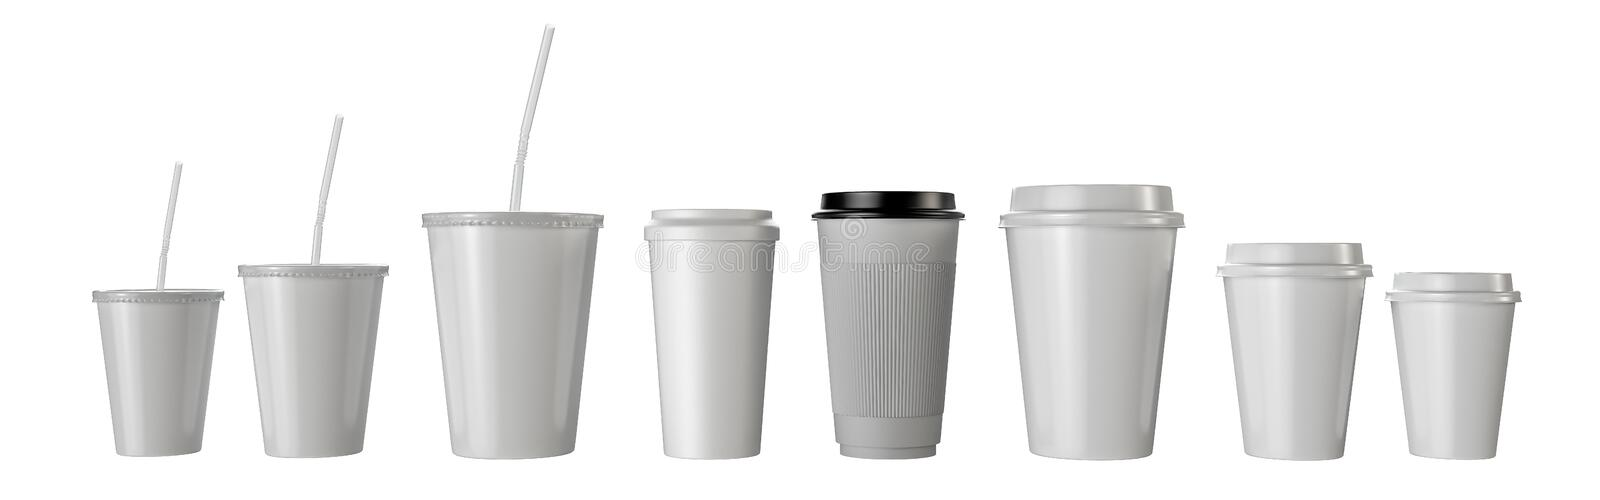 Many fast food paper cups isolated. royalty free illustration